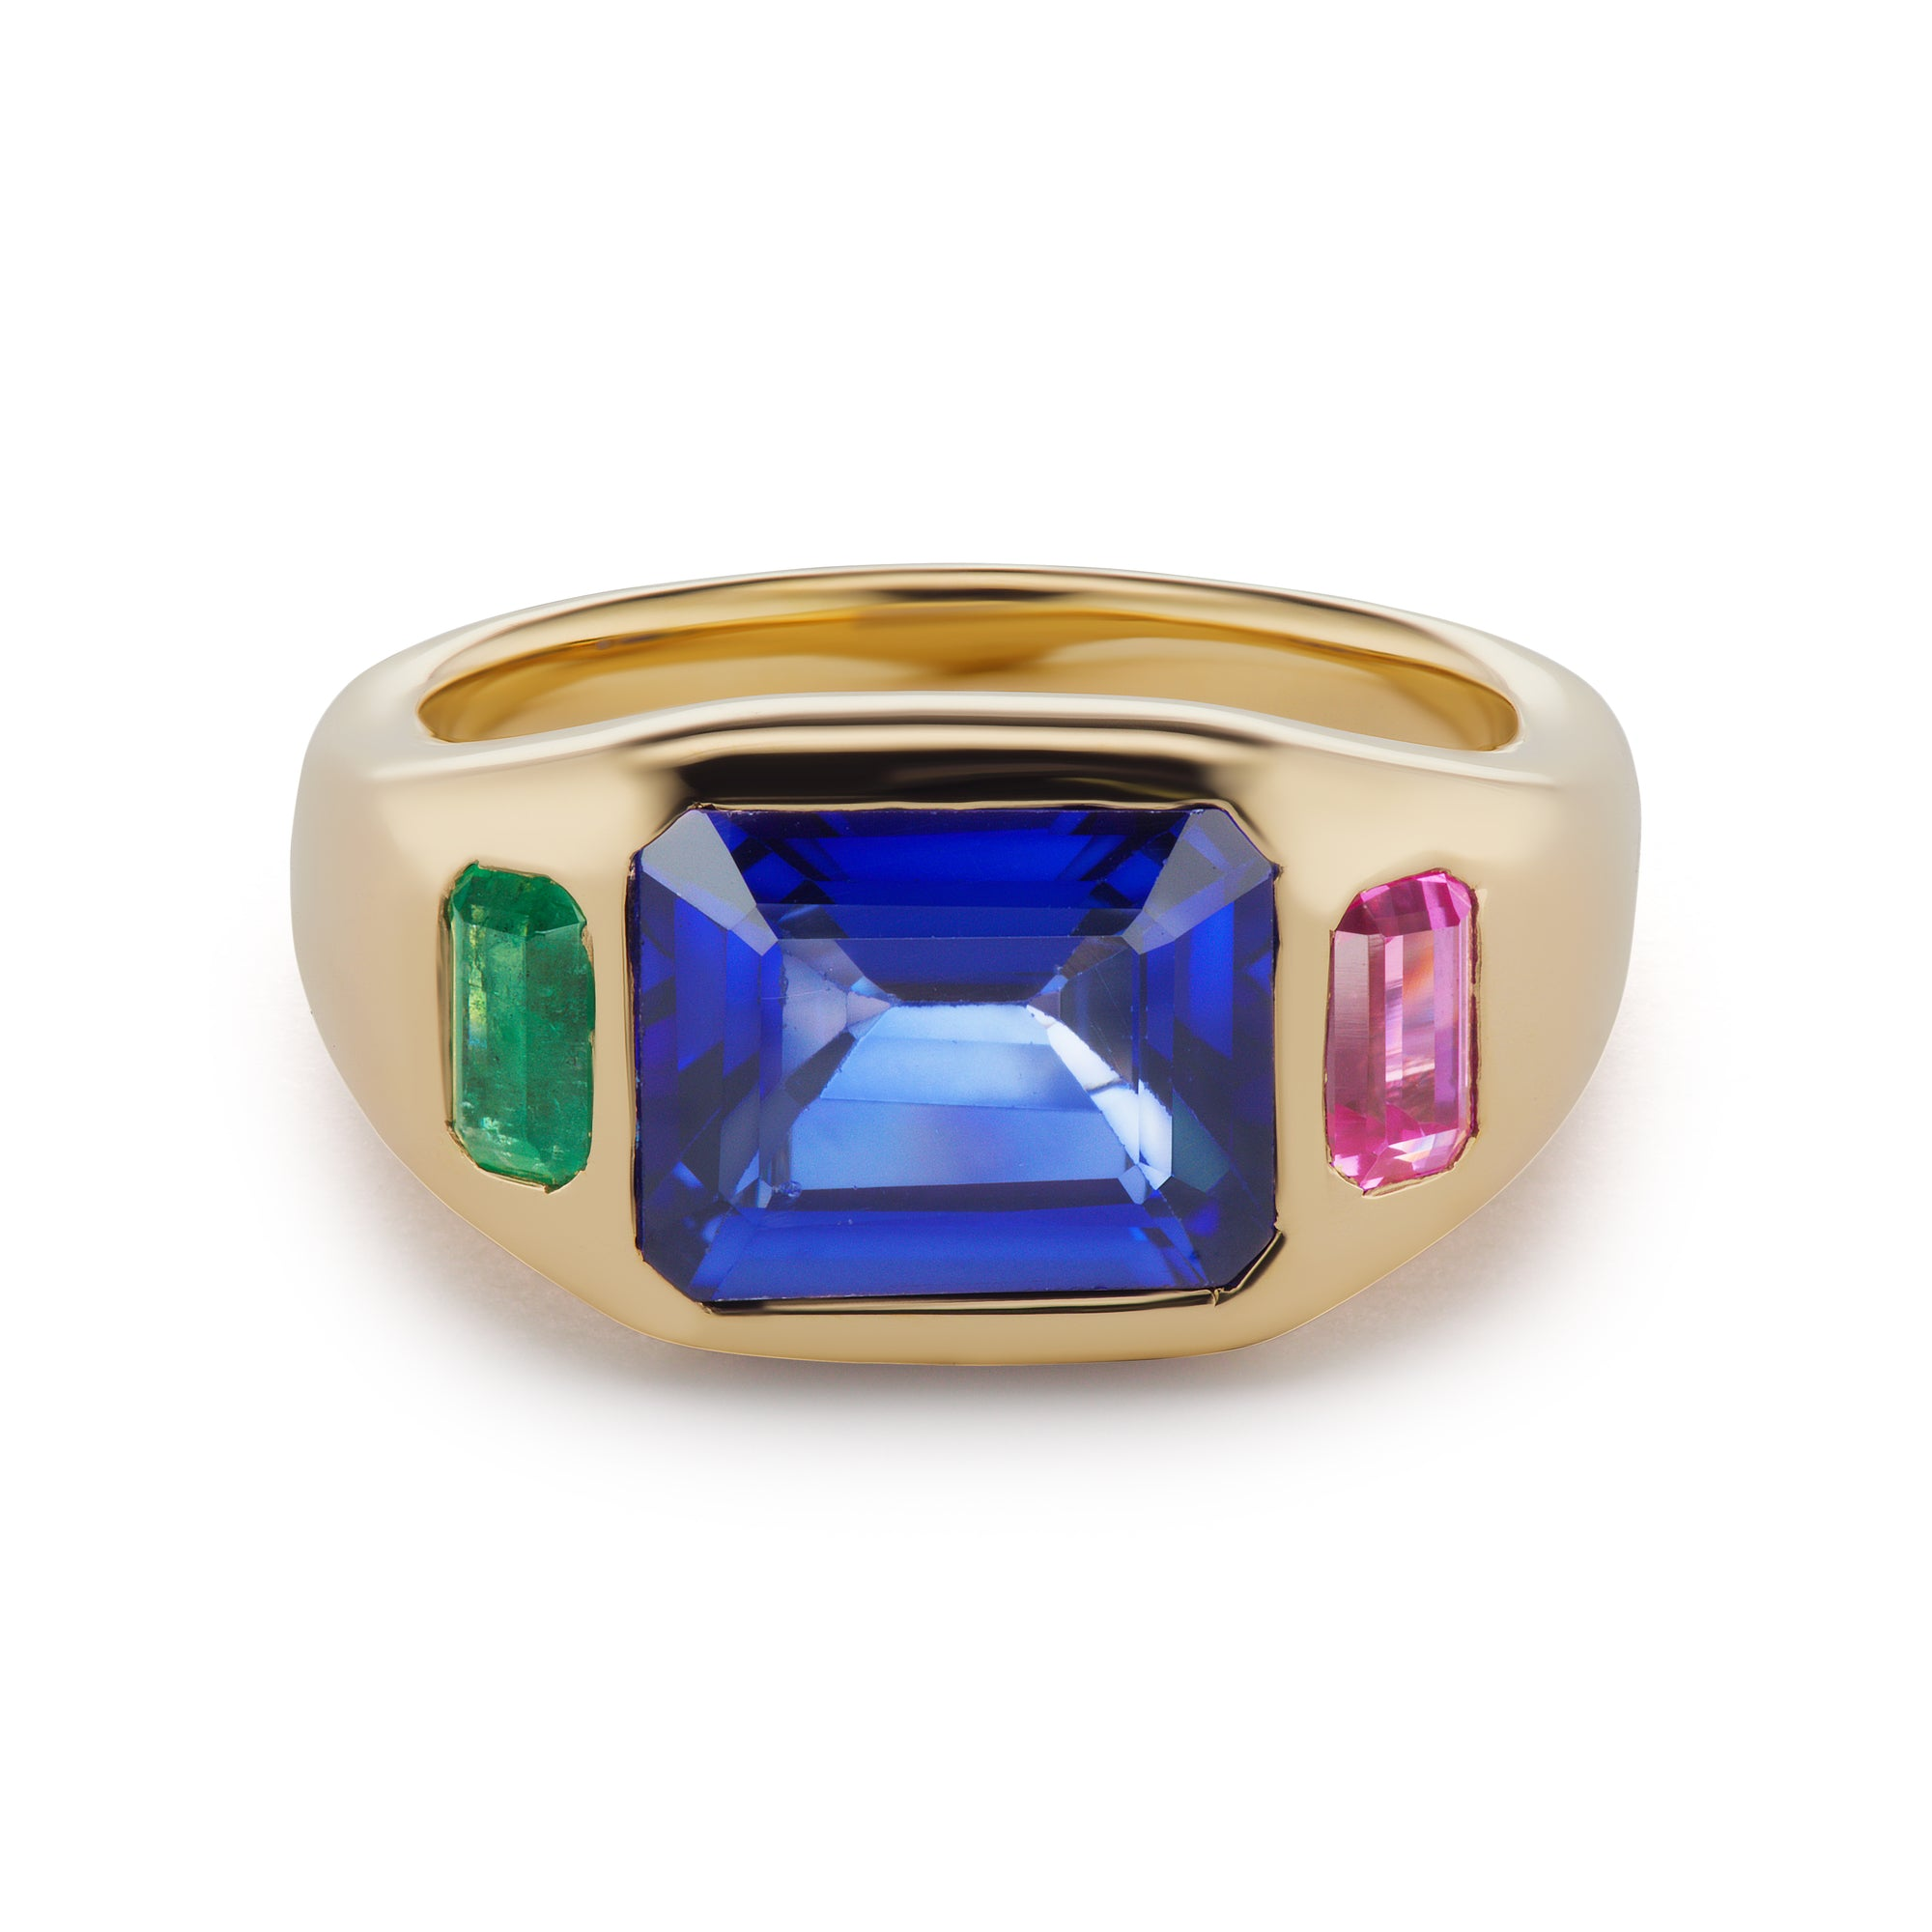 One-of-a-Kind Blue Sapphire Gypsy Ring with Emerald and Pink Topaz Sides